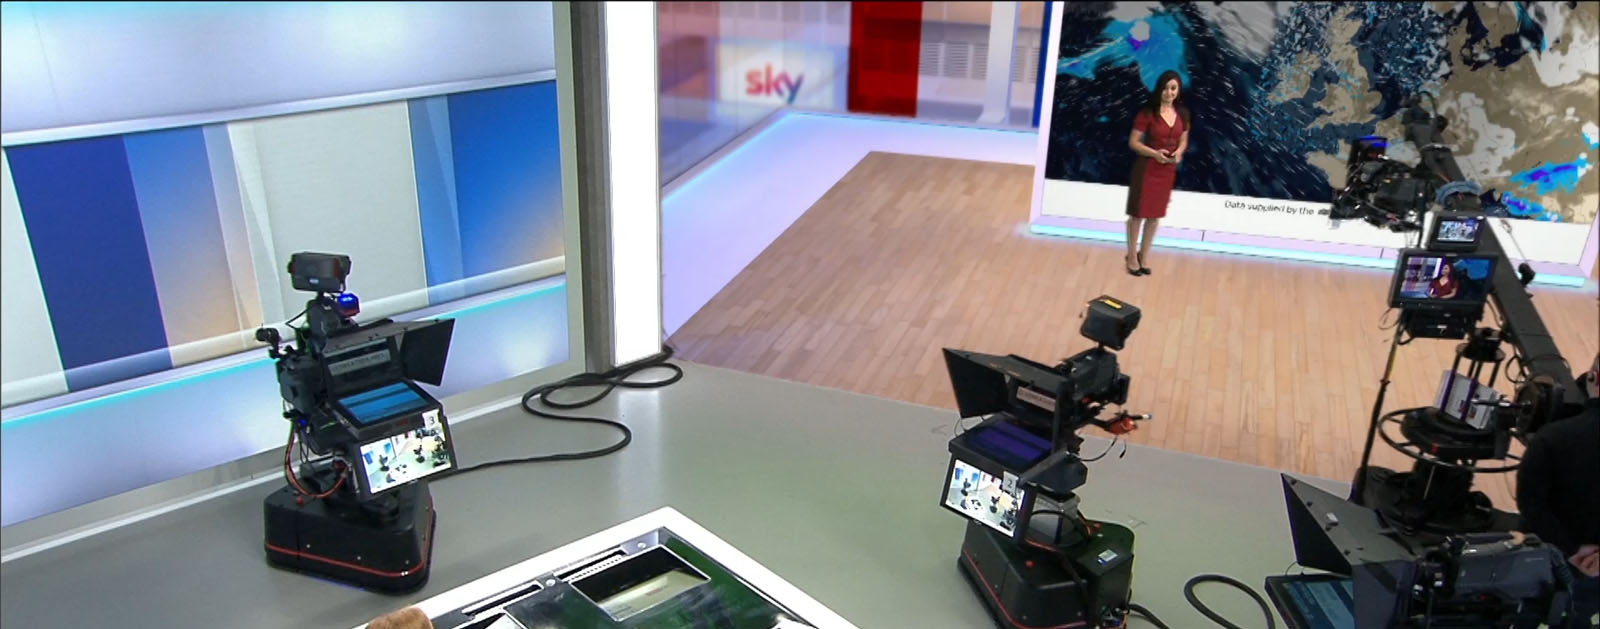 Design and preparation of virtual sets for Sky News